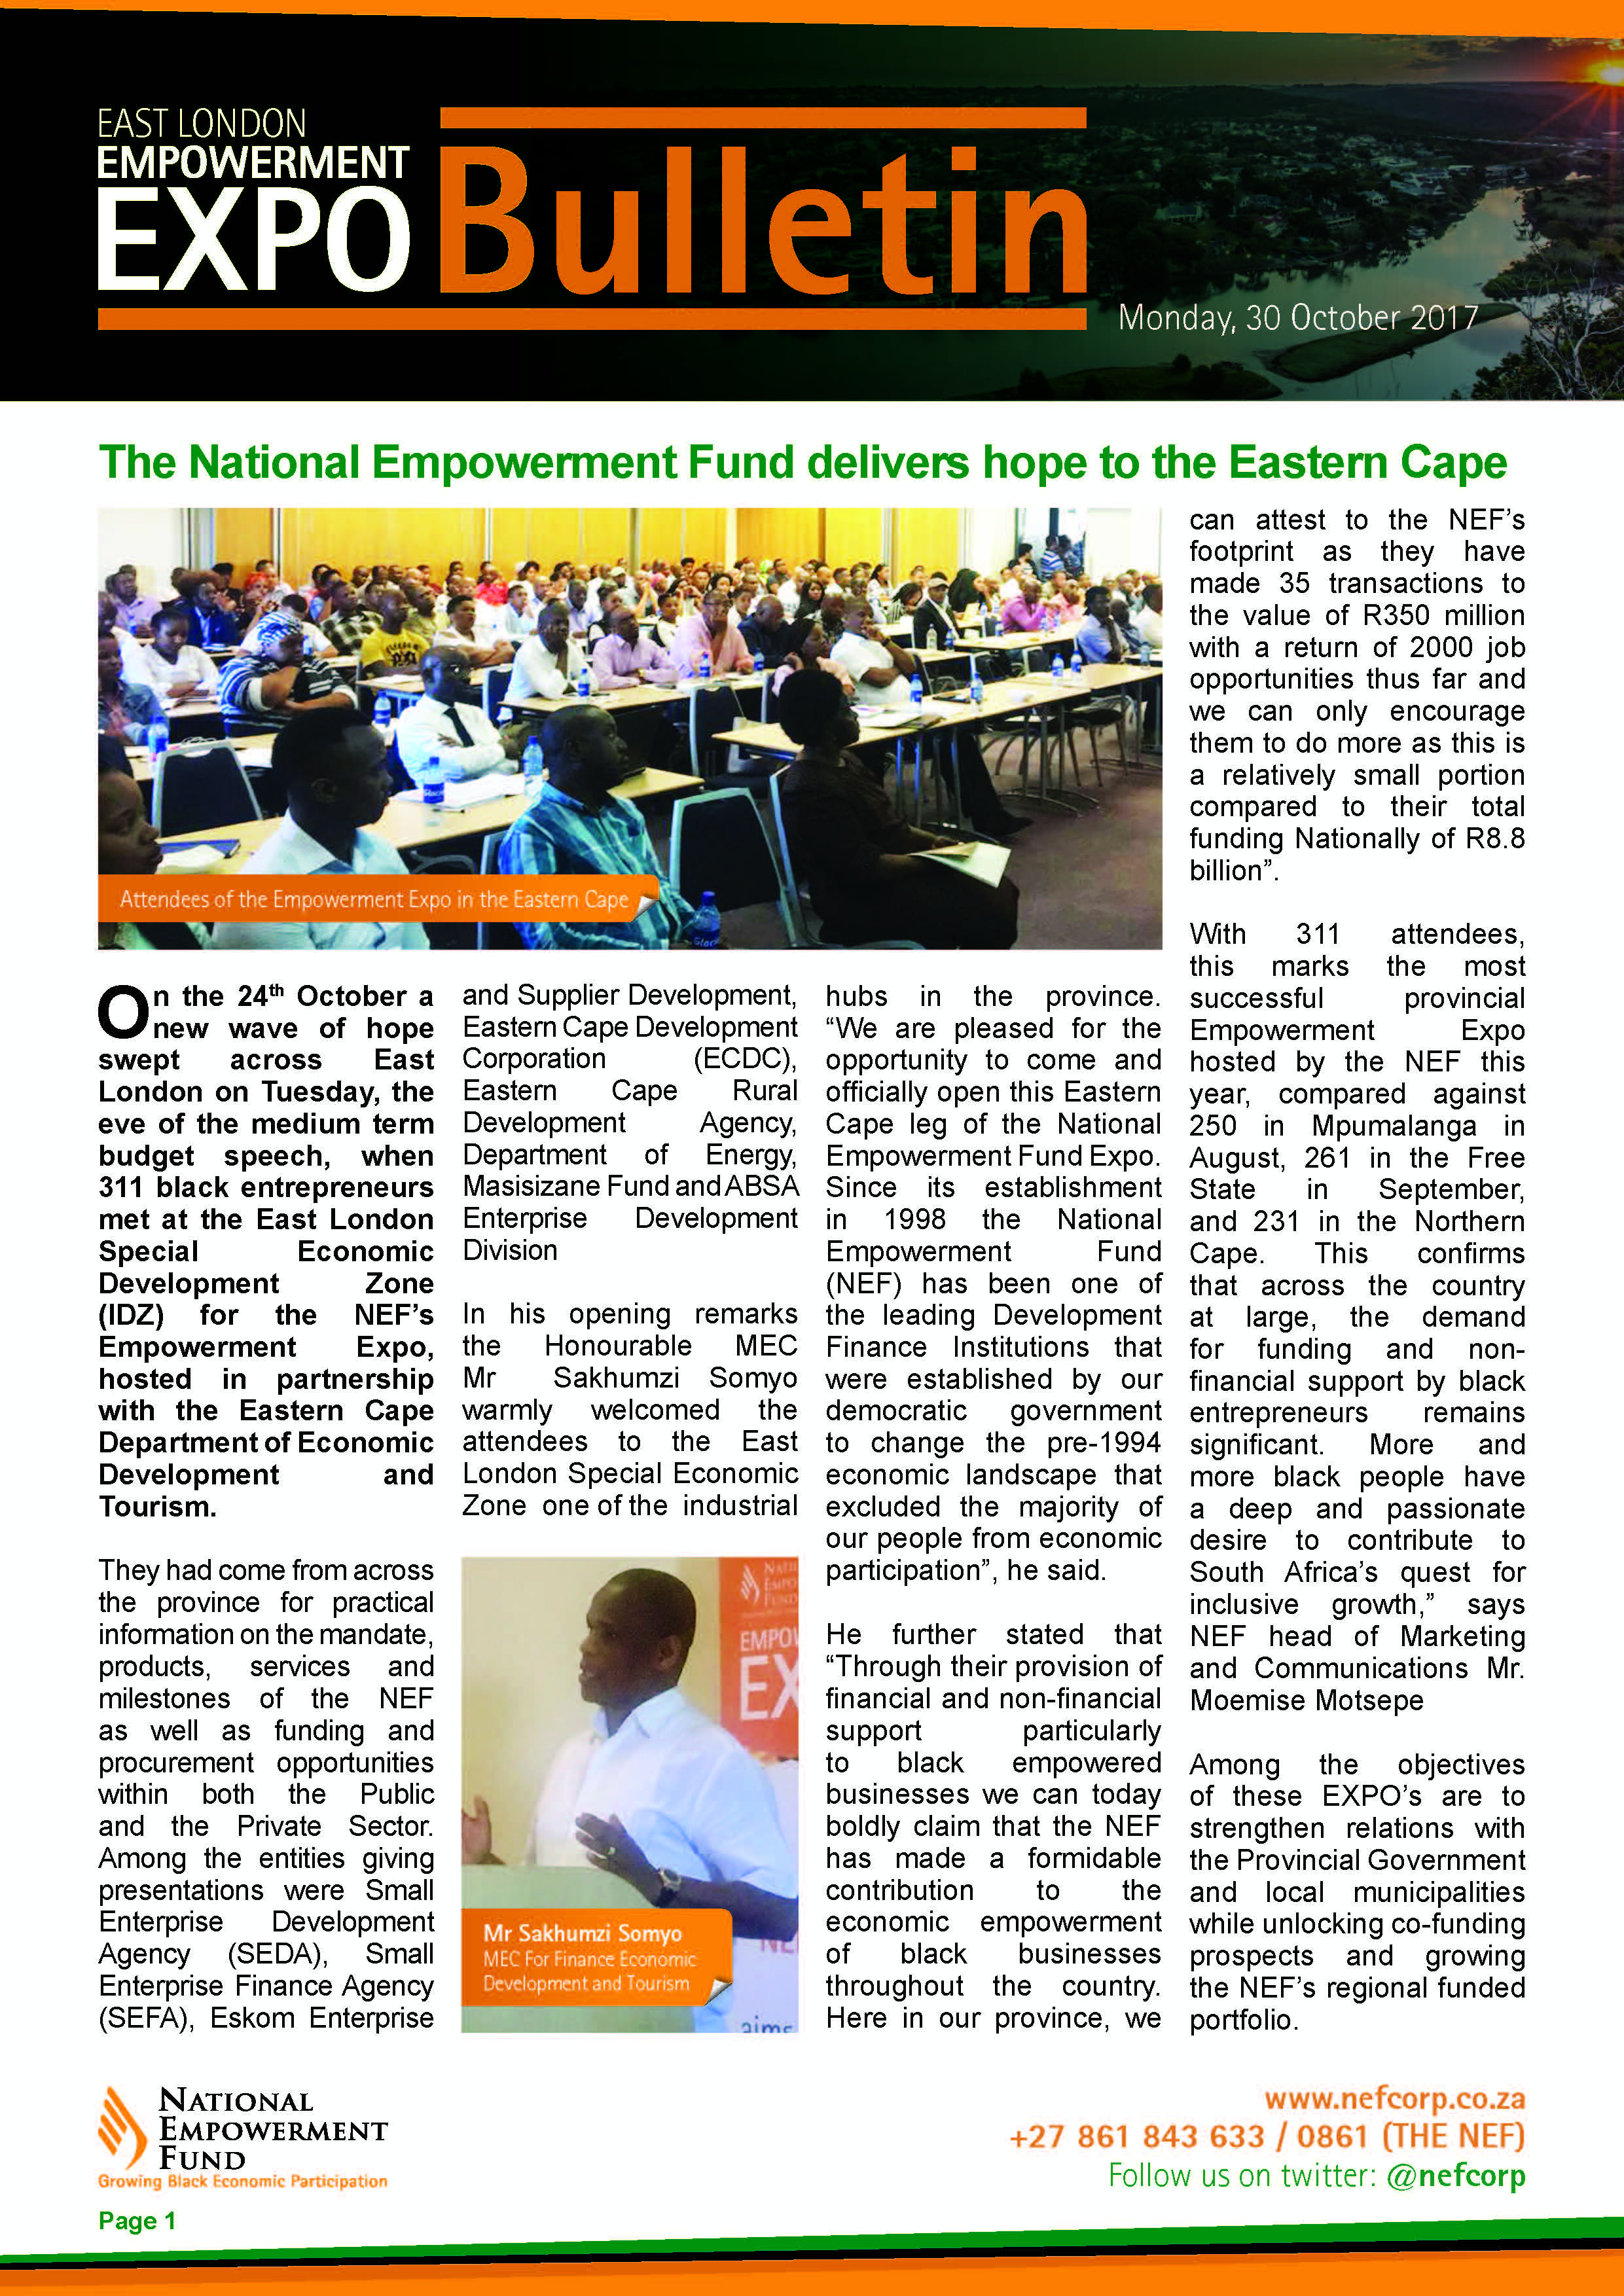 The National Empowerment Fund Delivers Hope To The Eastern Cape